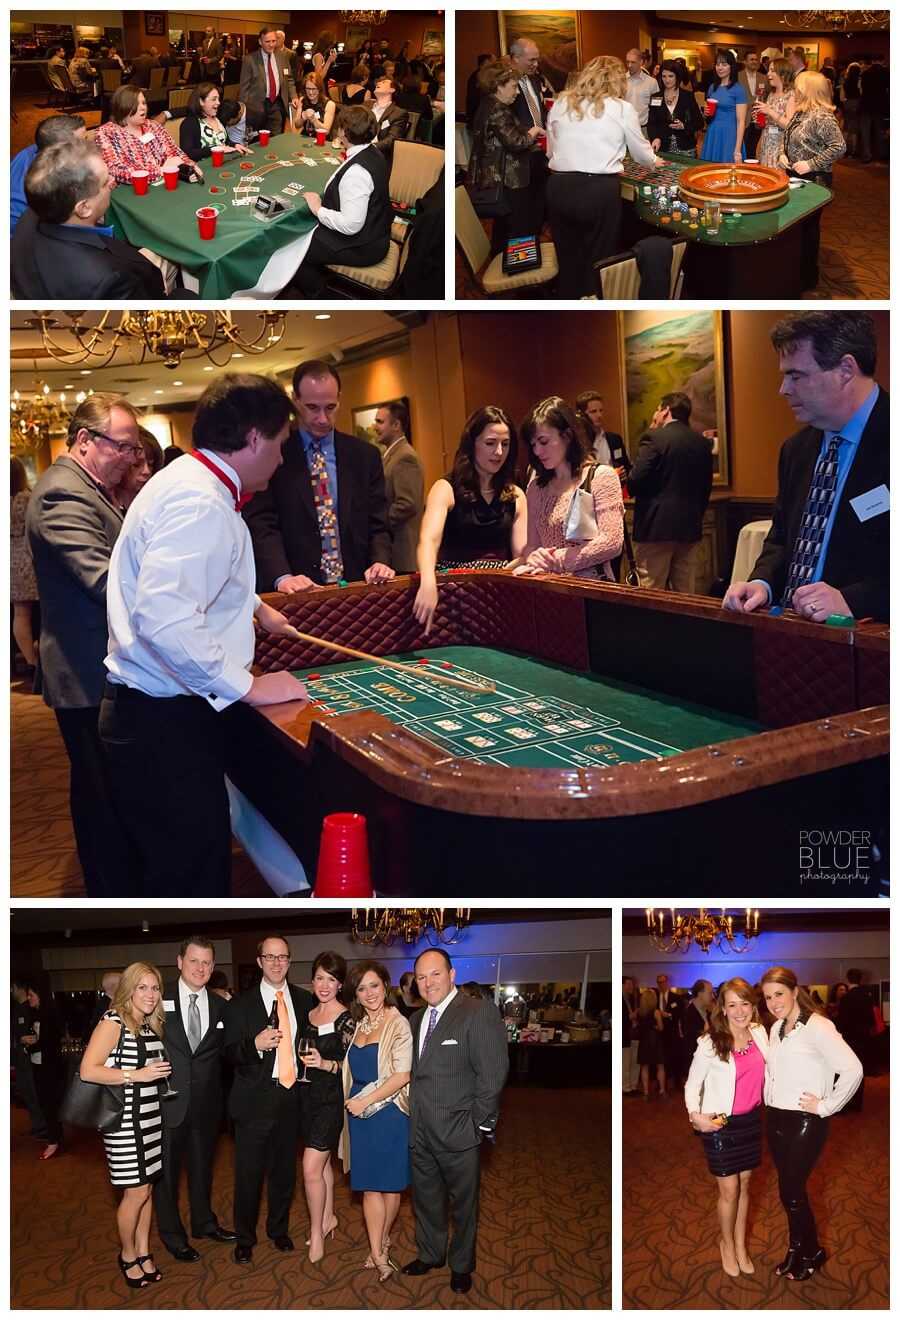 children's hospital pittsburgh foundation hearing center event photos